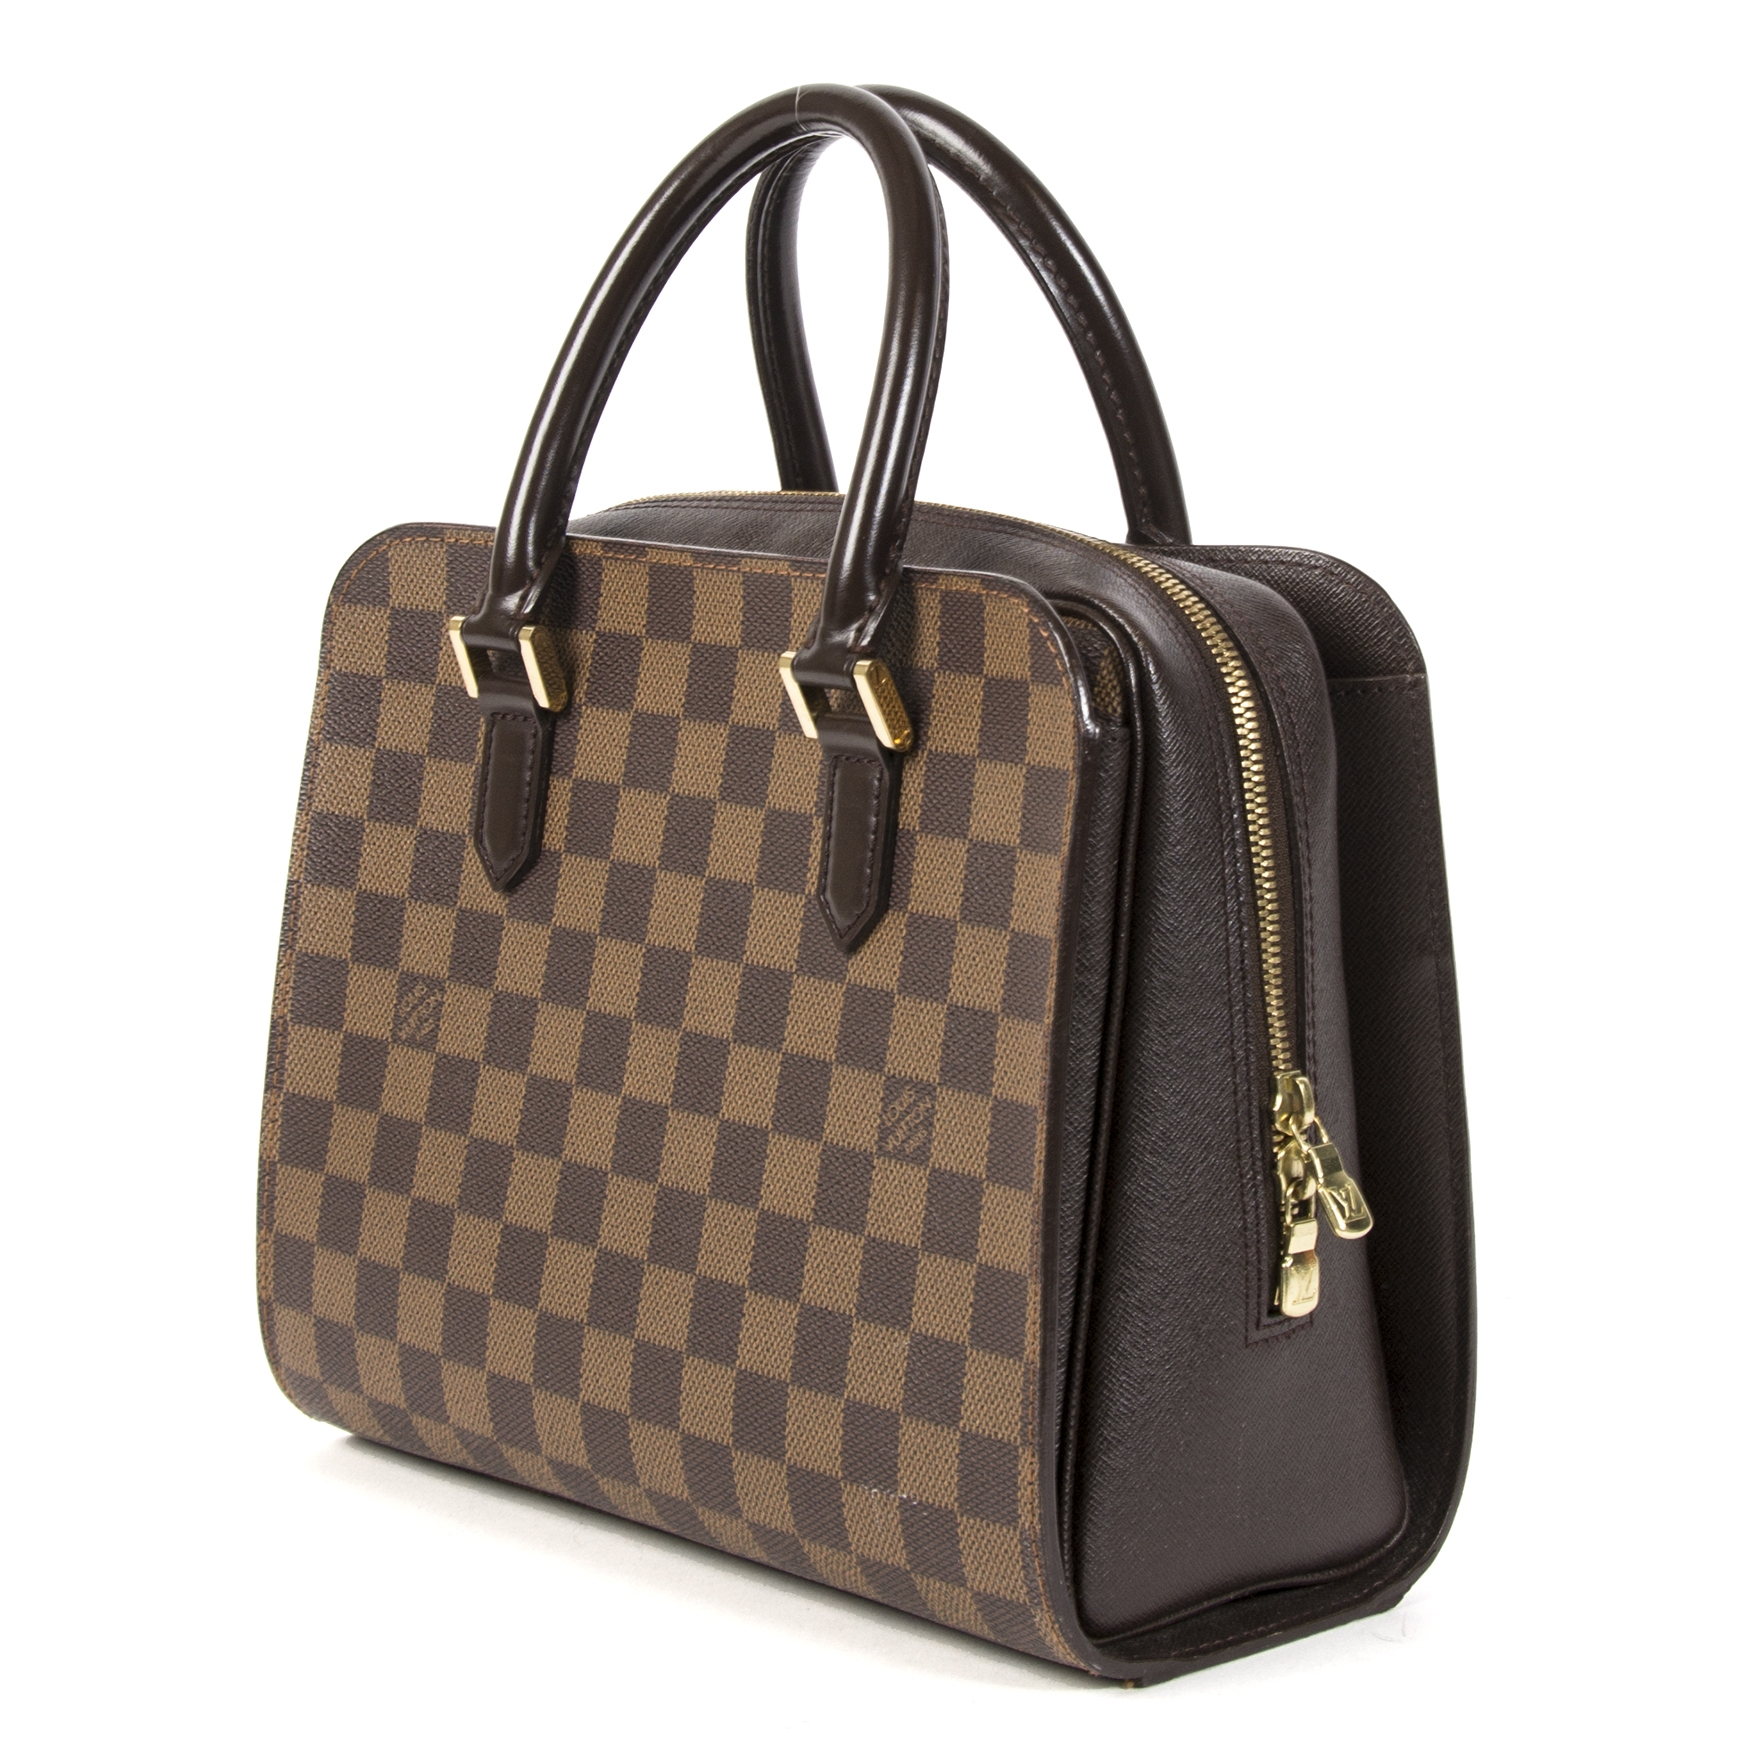 Louis Vuitton Damier Ebene Brera Bag